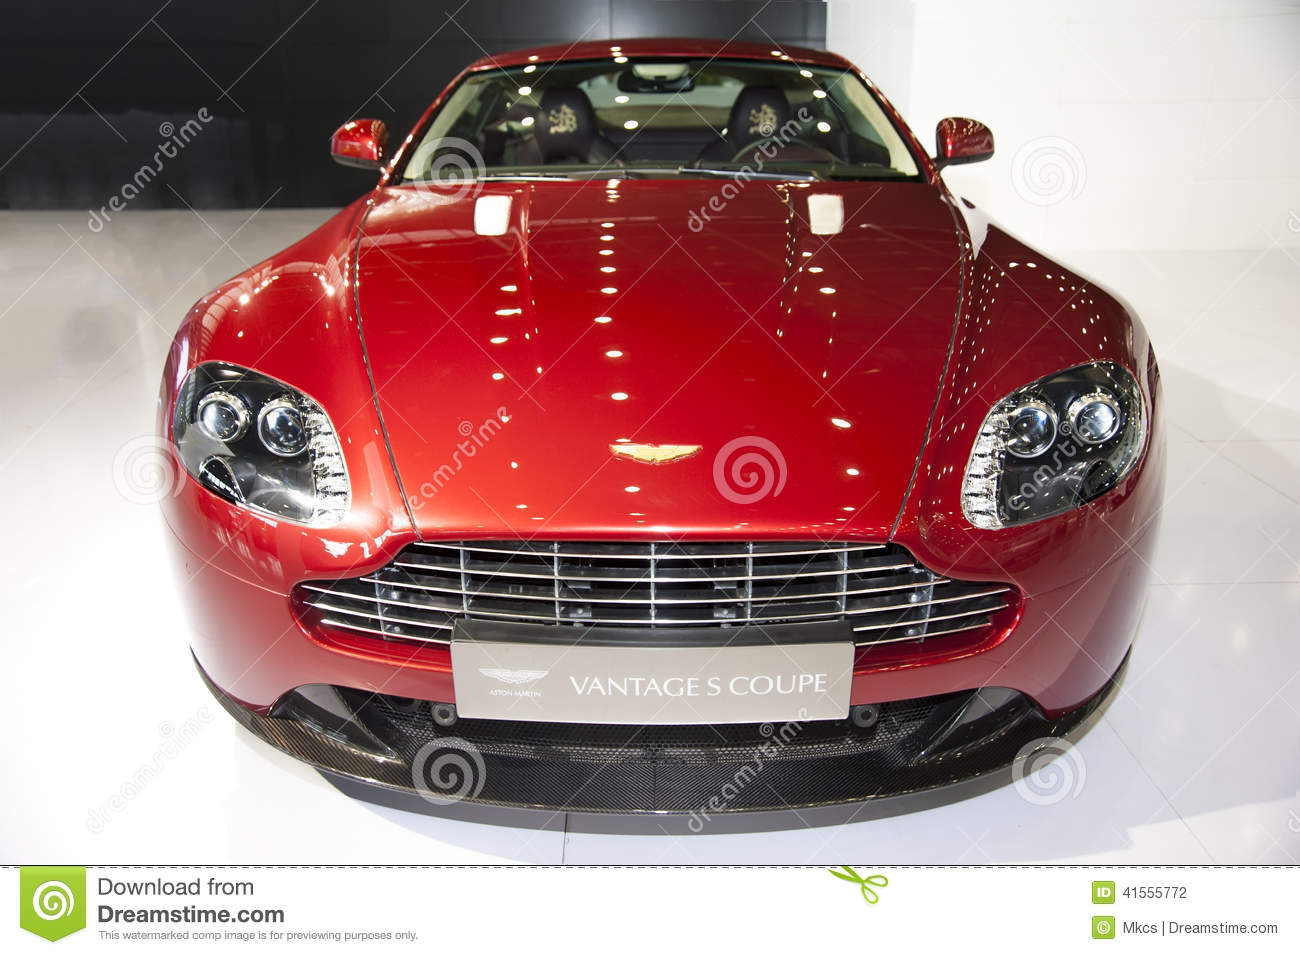 708 Red Aston Martin Photos Free Royalty Free Stock Photos From Dreamstime